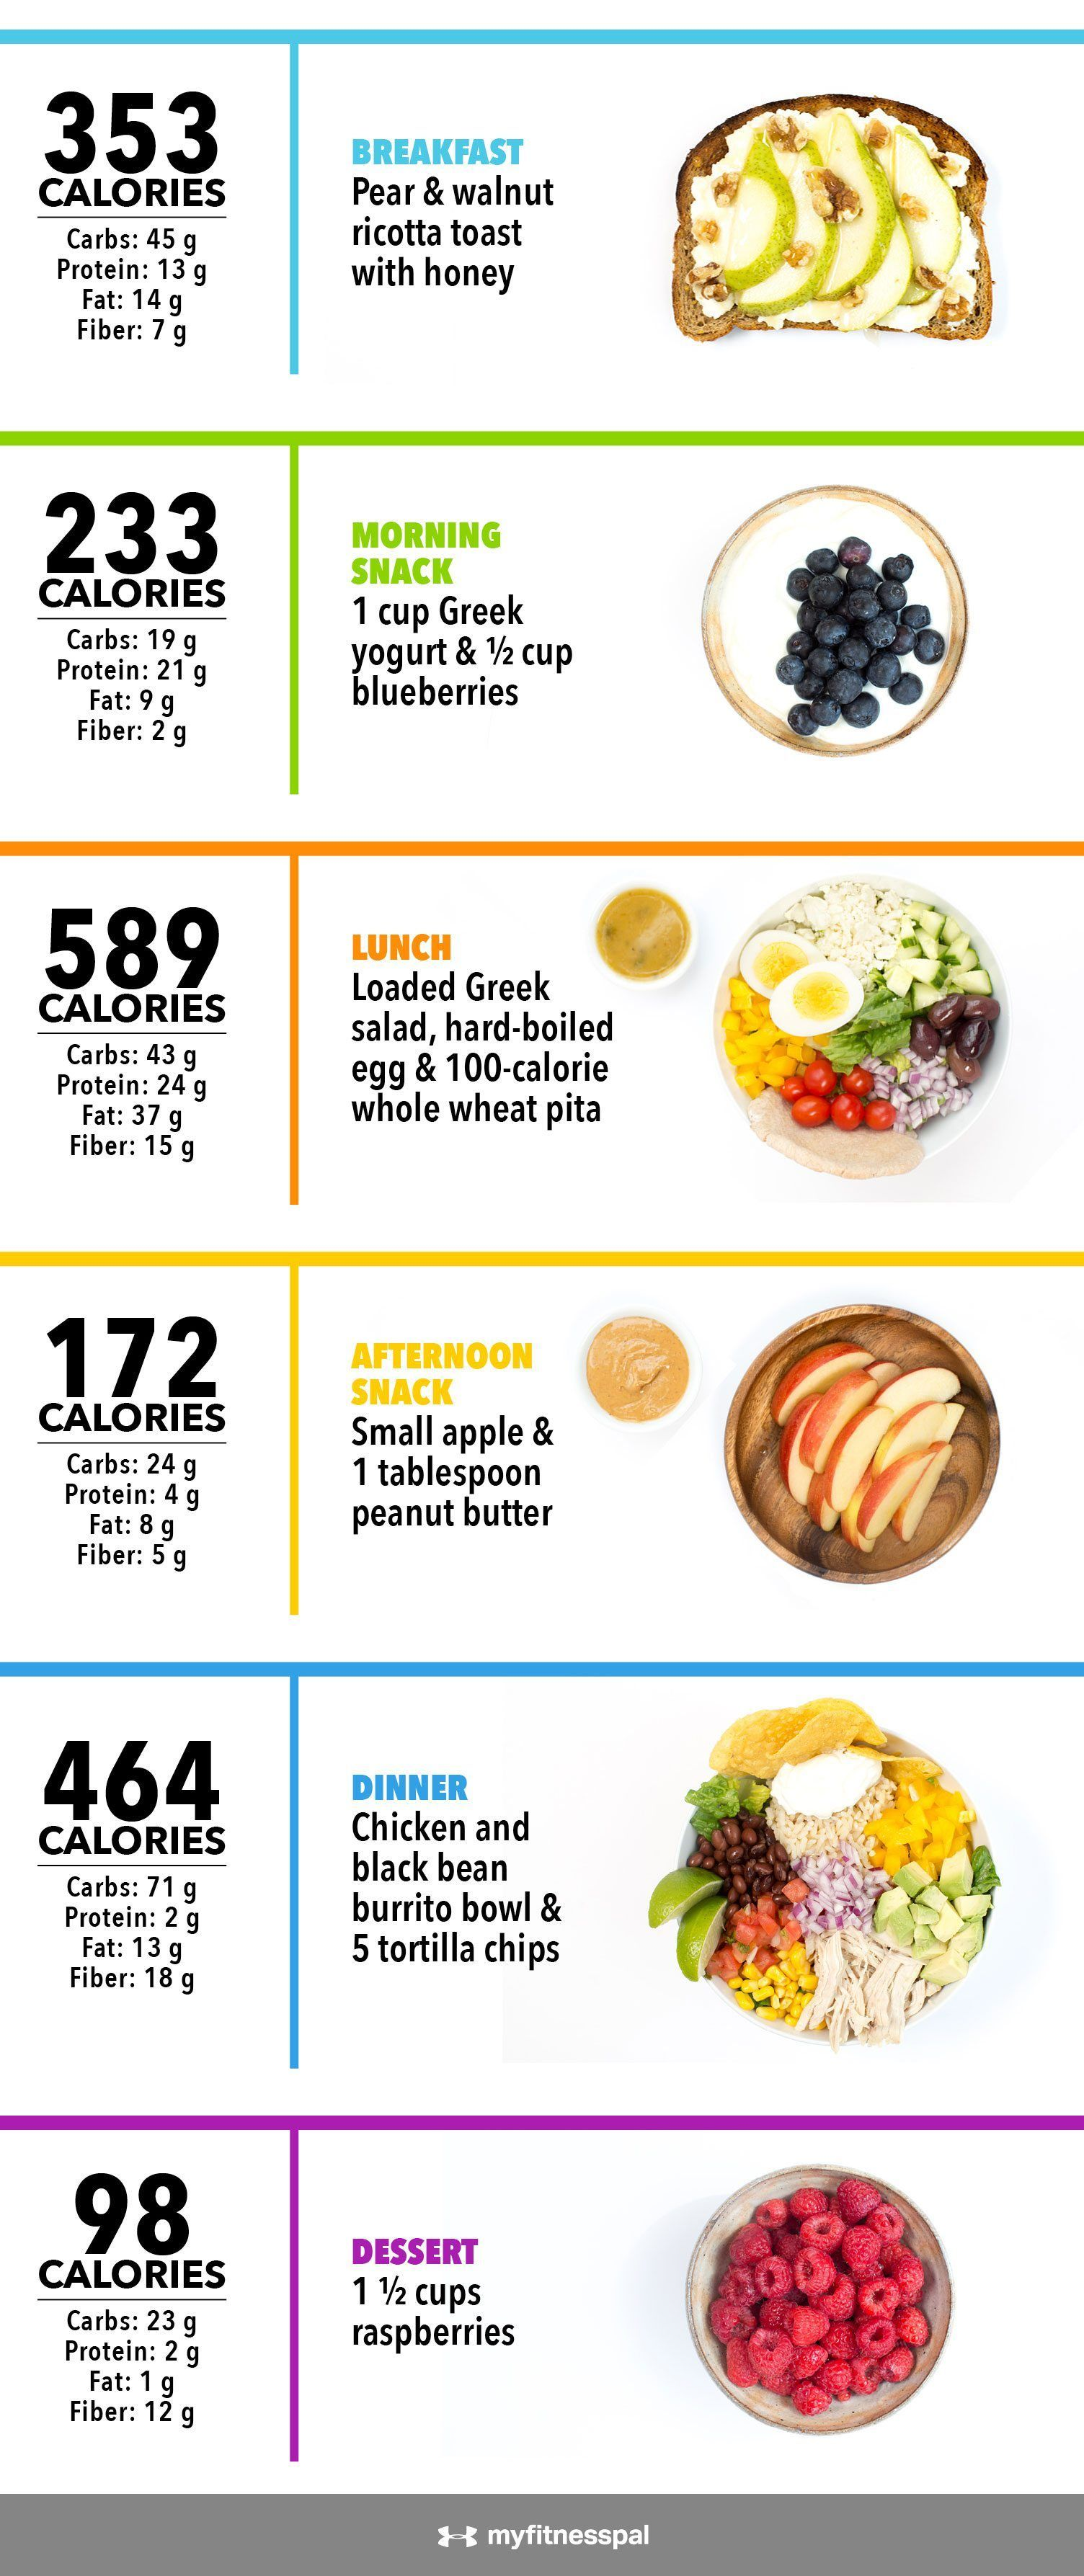 Mexican Food Nutrition Facts: Menu Choices Calories